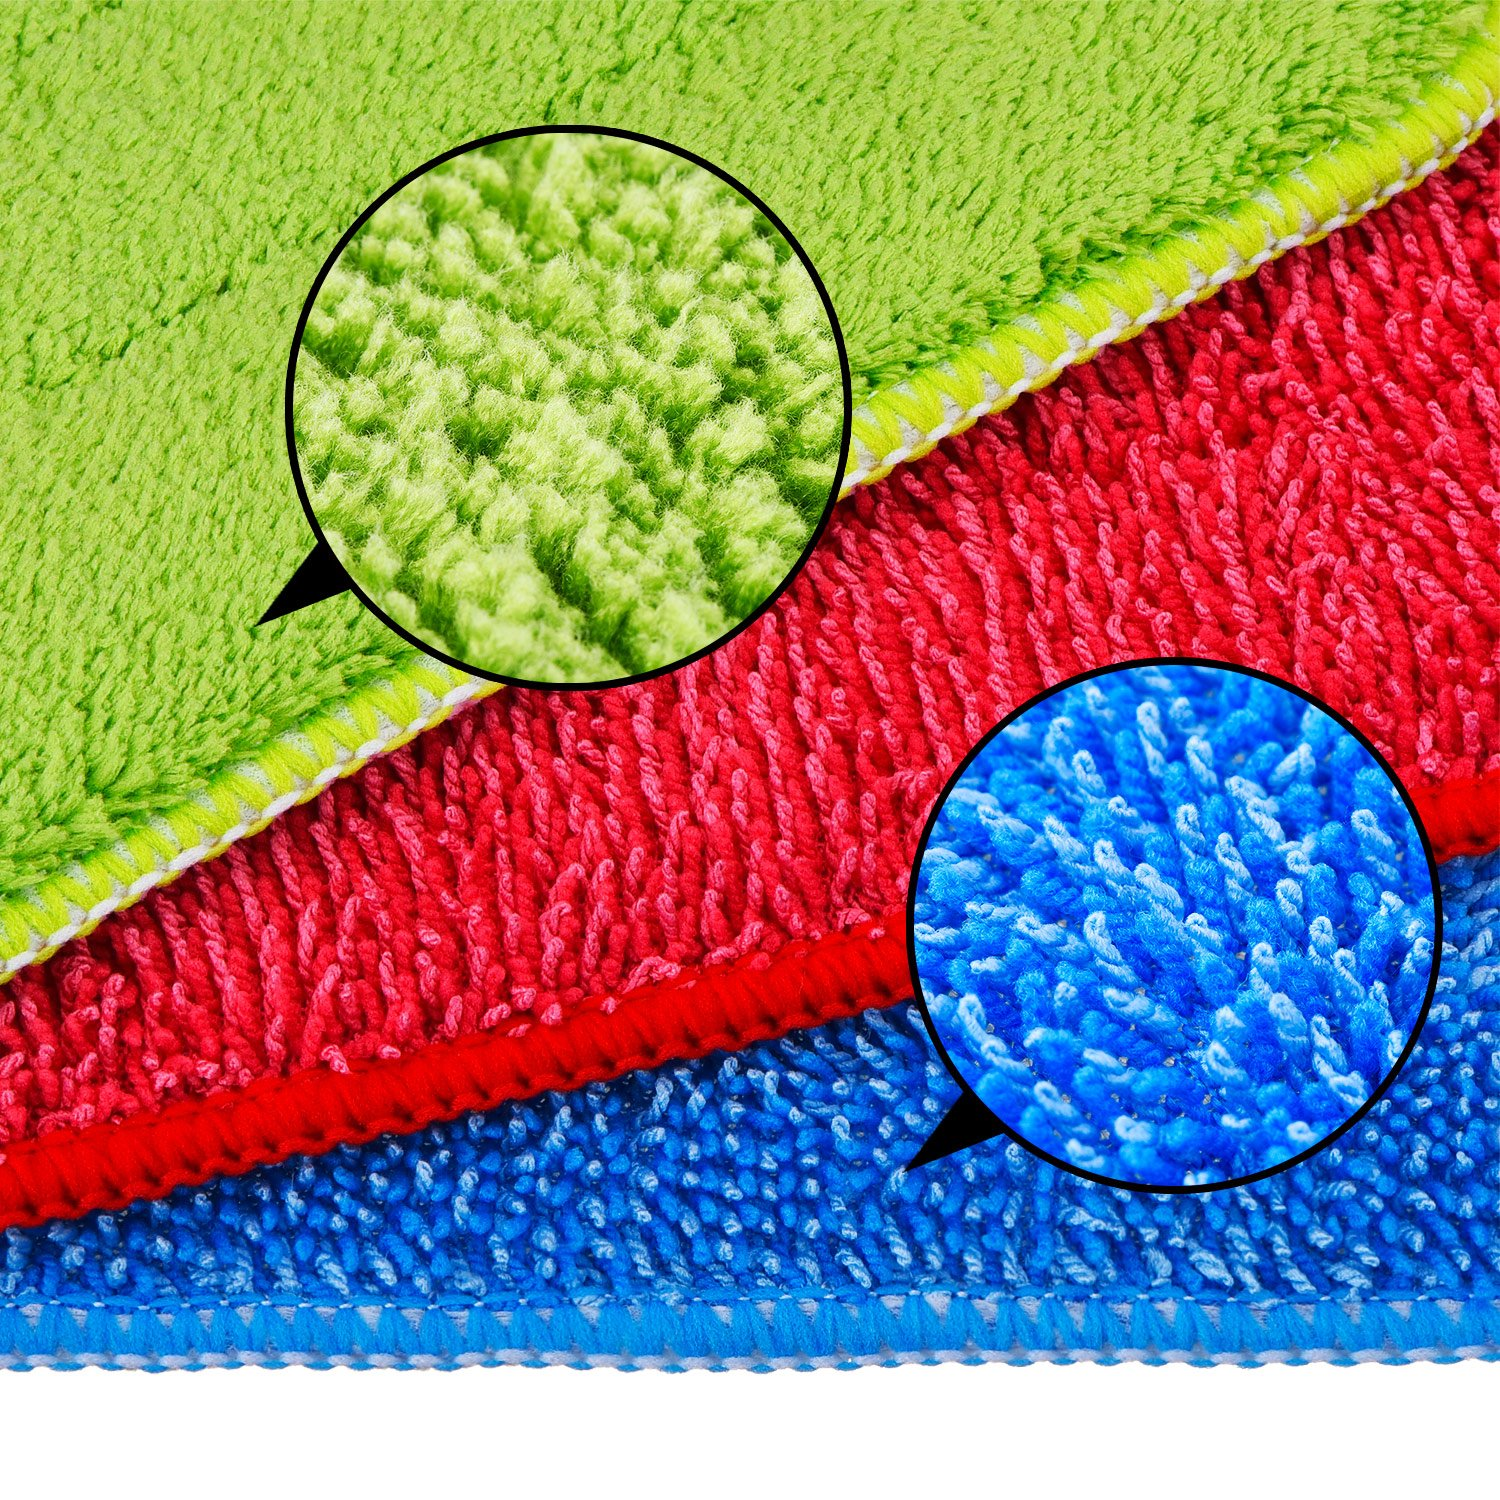 TecUnite 6 Pieces Microfiber Cleaning Pads Reveal Mop 16 to 18 inch Fit for Most Spray Mops and Reveal Mops Washable (16.5 x 5.5 inch) by TecUnite (Image #2)